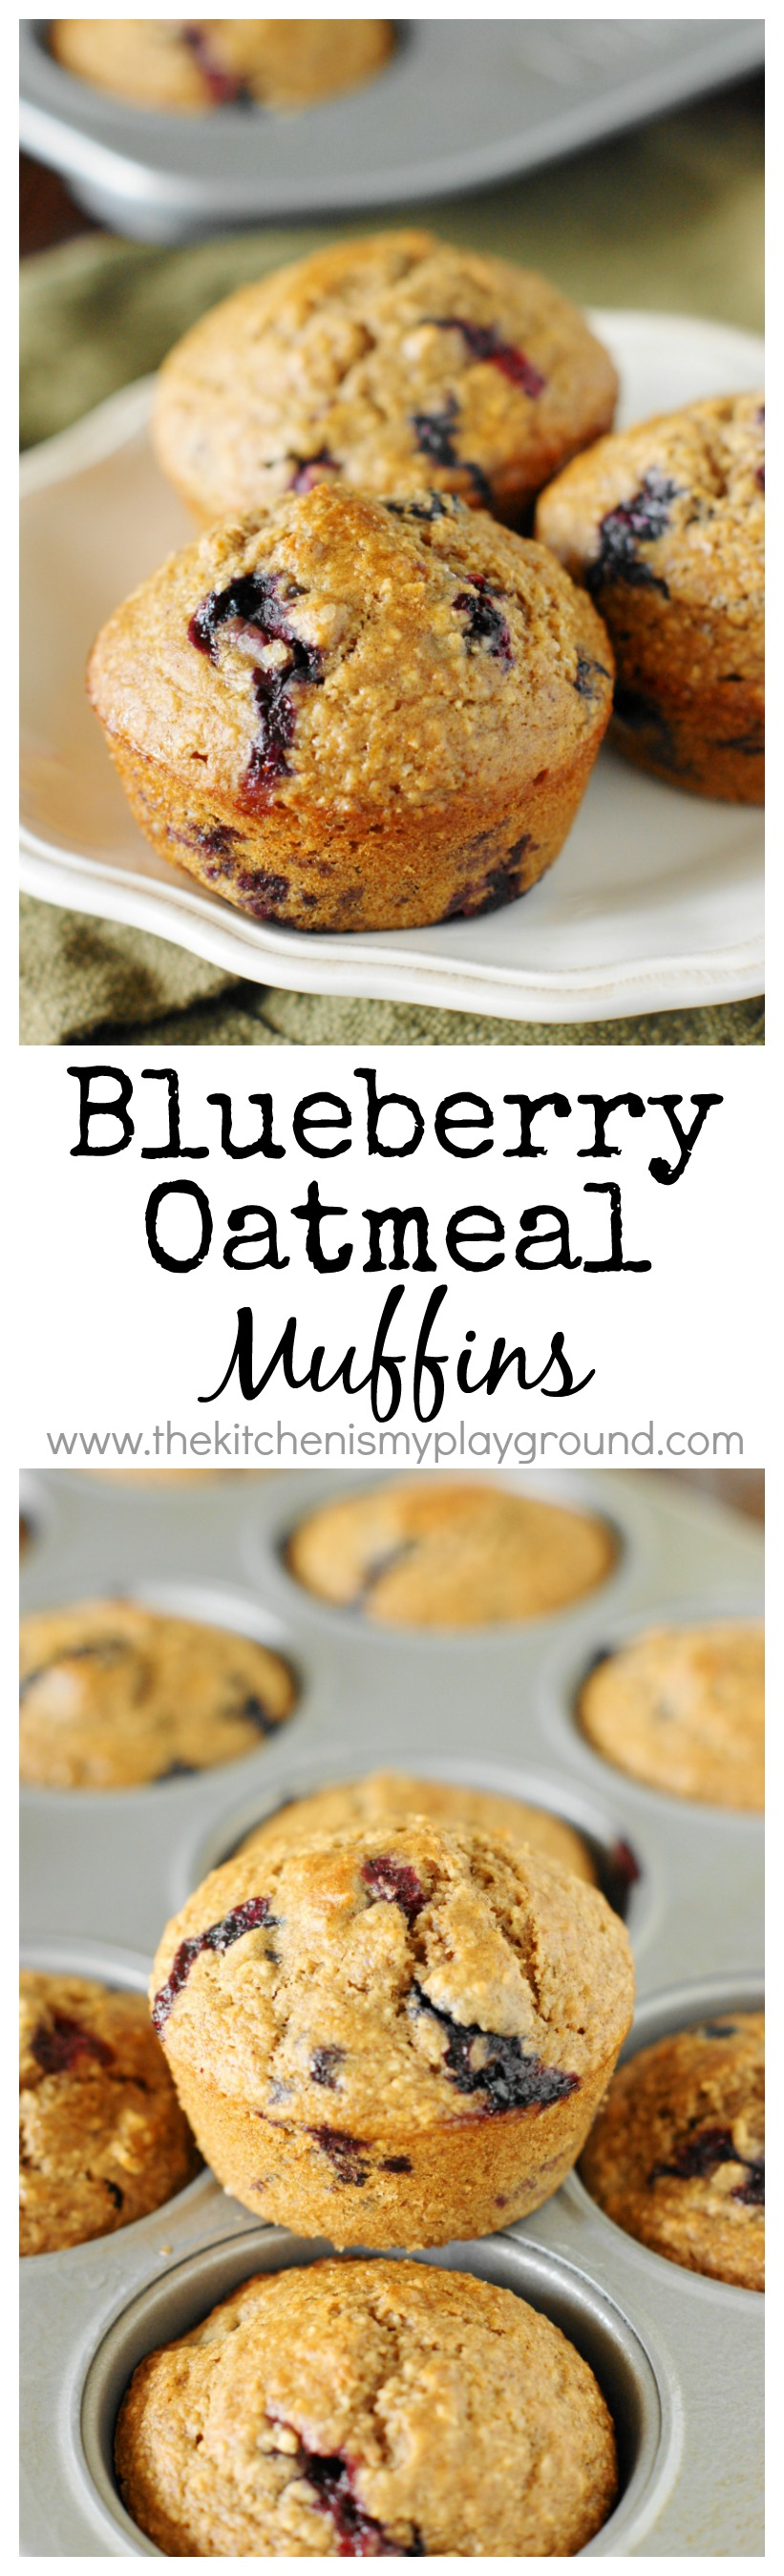 Blueberry Oatmeal Muffins ~ Made with ground oats, whole wheat flour, and just a touch of white flour, these tasty muffins are mostly whole grain.  They make a perfect low-guilt breakfast or after-school snack!   www.thekitchenismyplayground.com